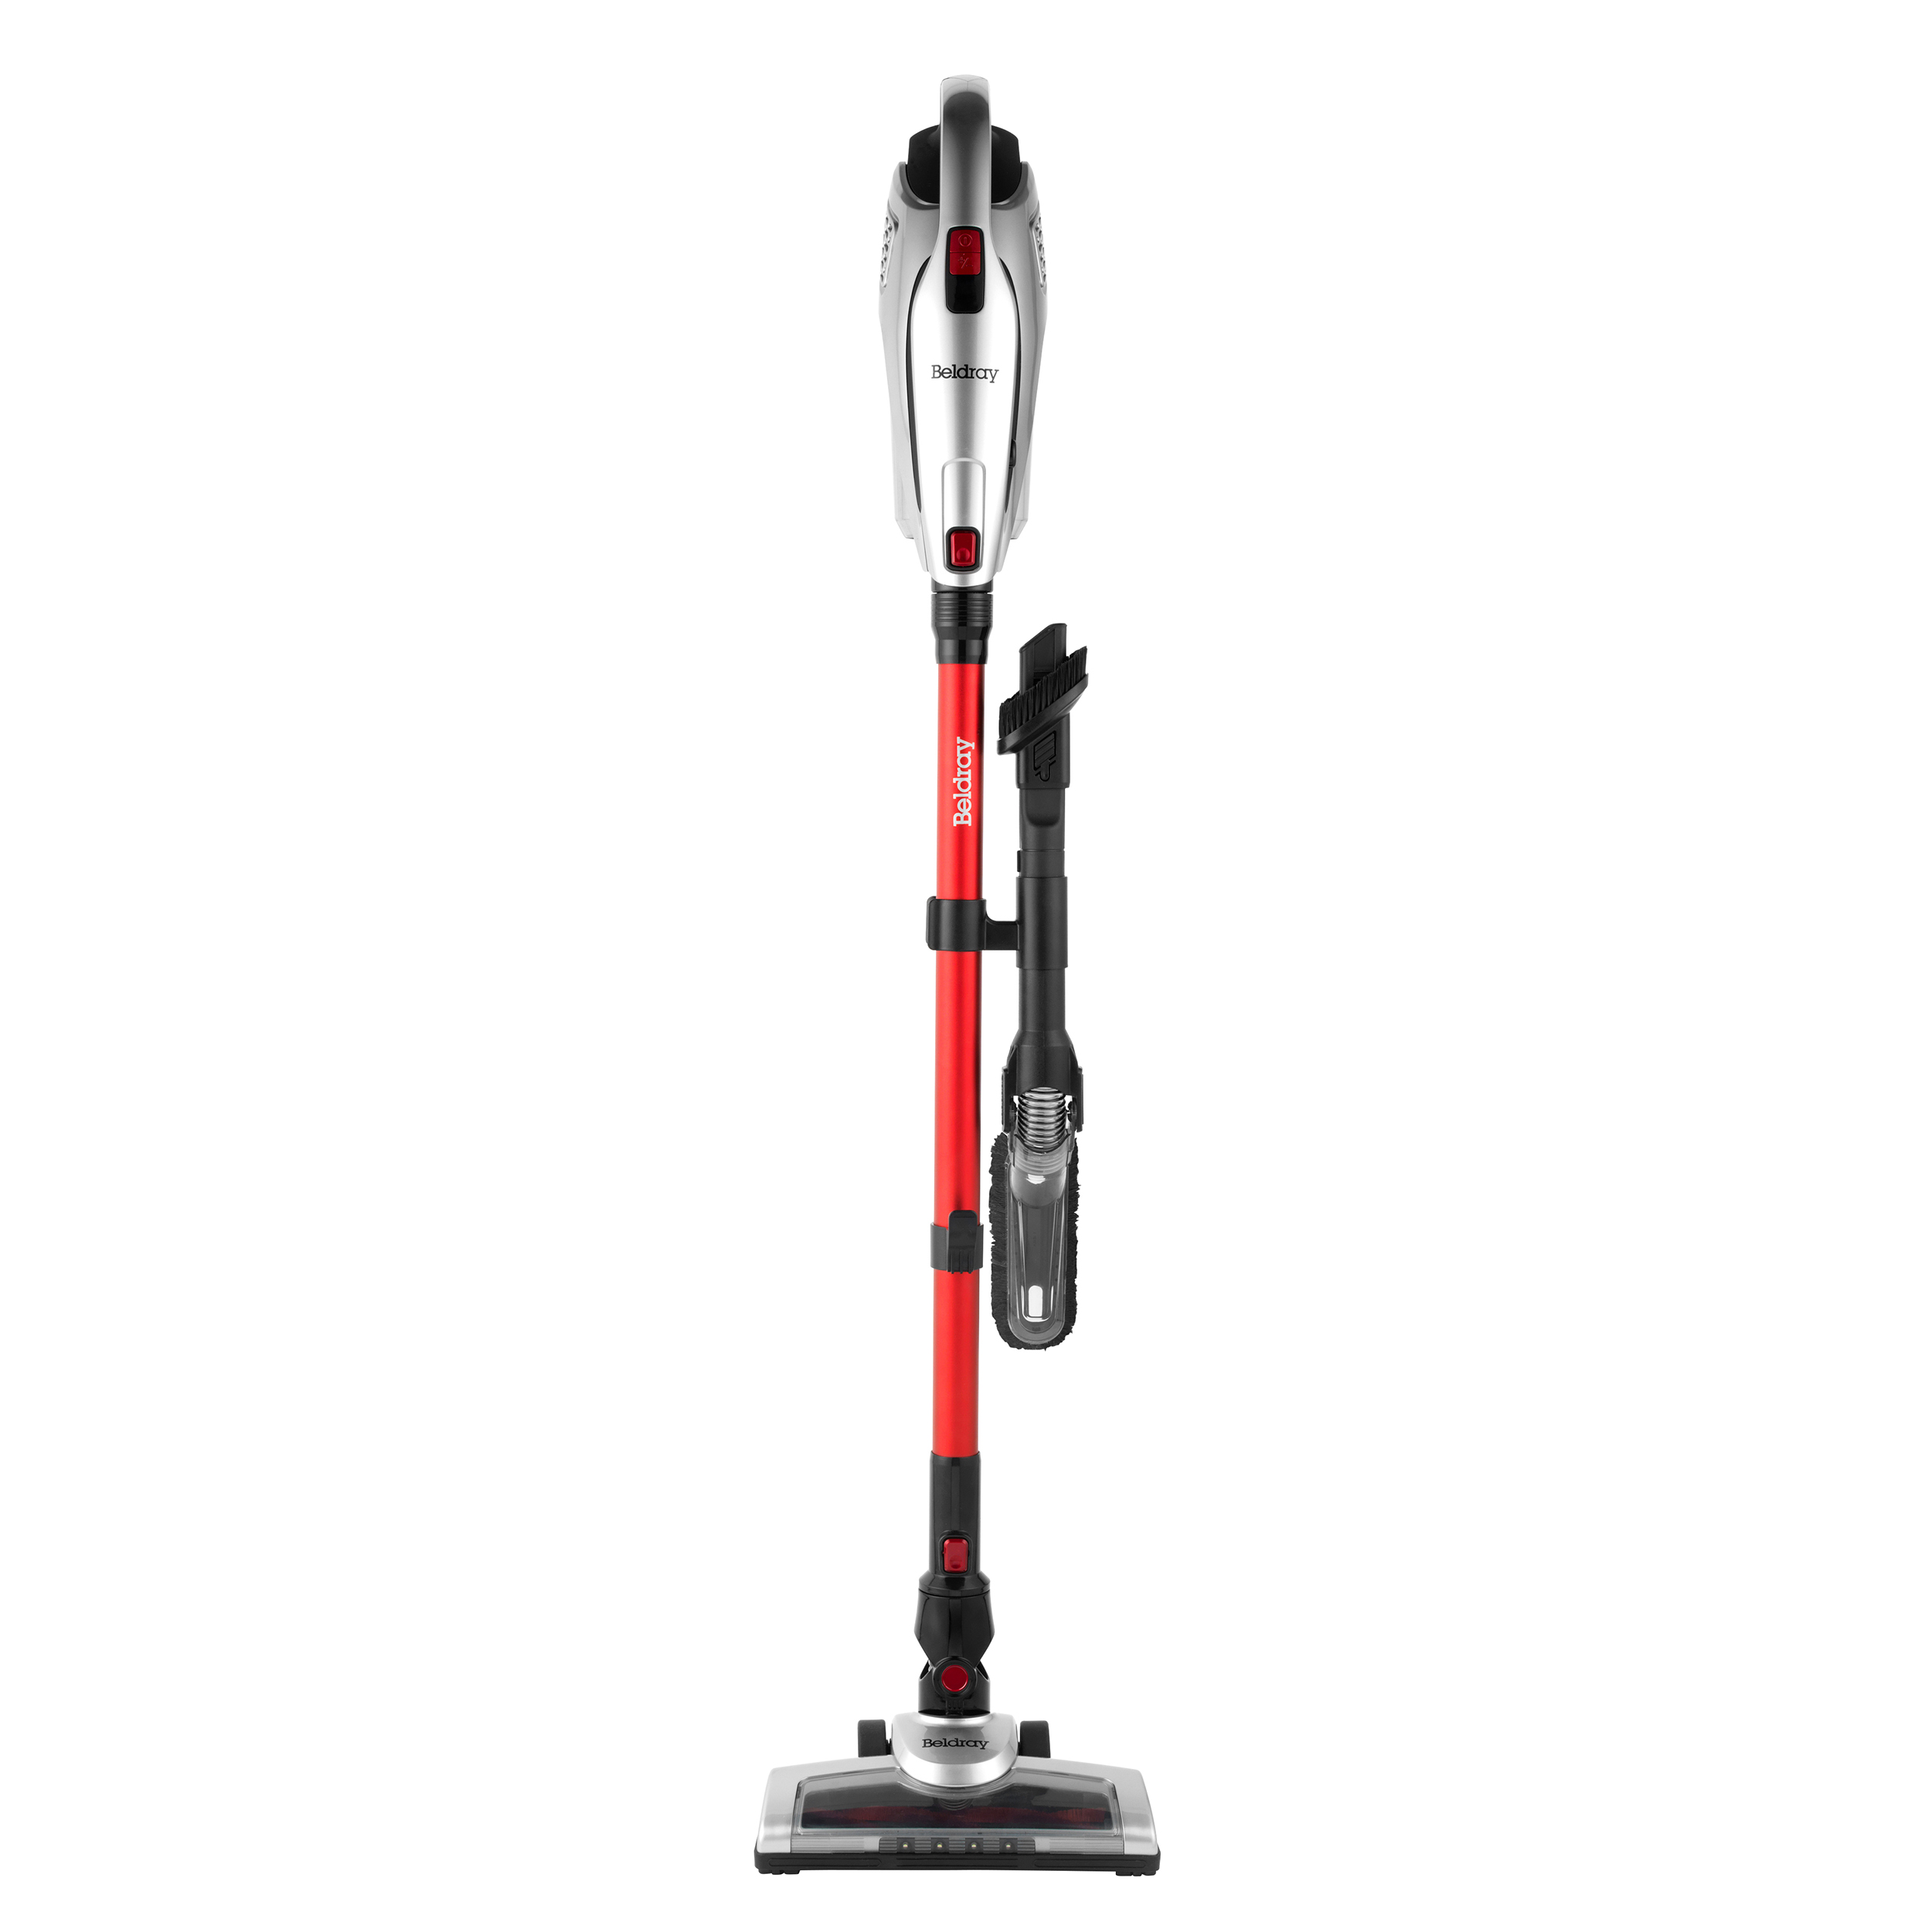 Airpower Cordless Vacuum Cleaner With Brushless Motor 180